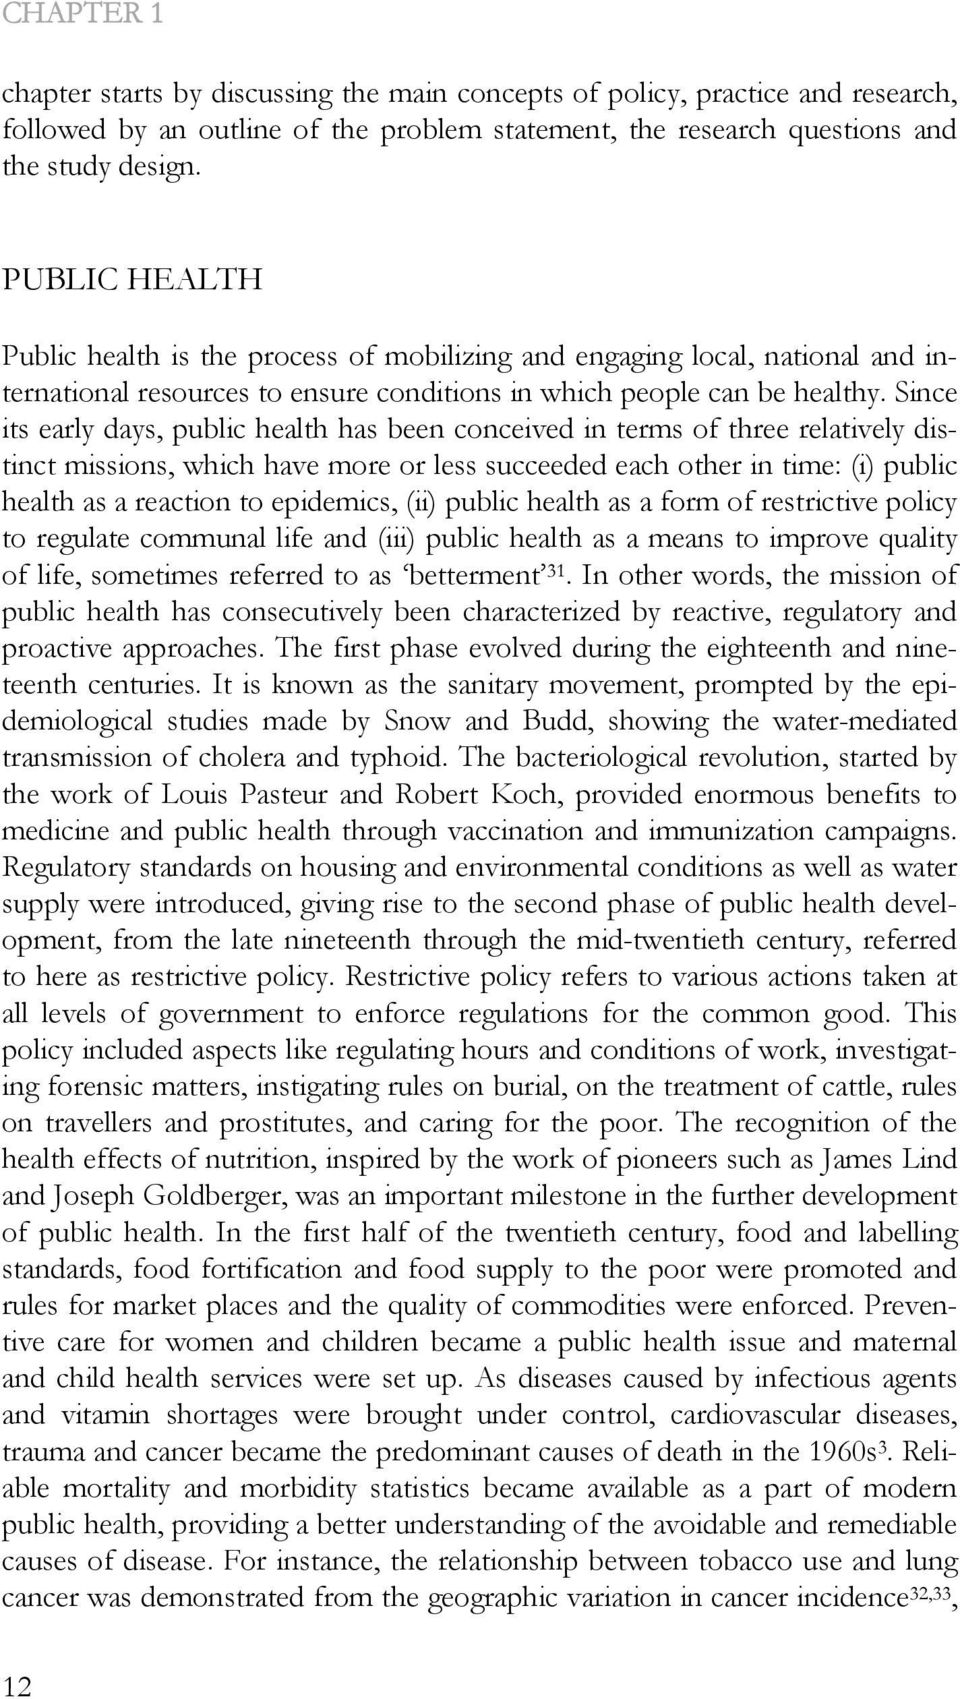 Since its early days, public health has been conceived in terms of three relatively distinct missions, which have more or less succeeded each other in time: (i) public health as a reaction to